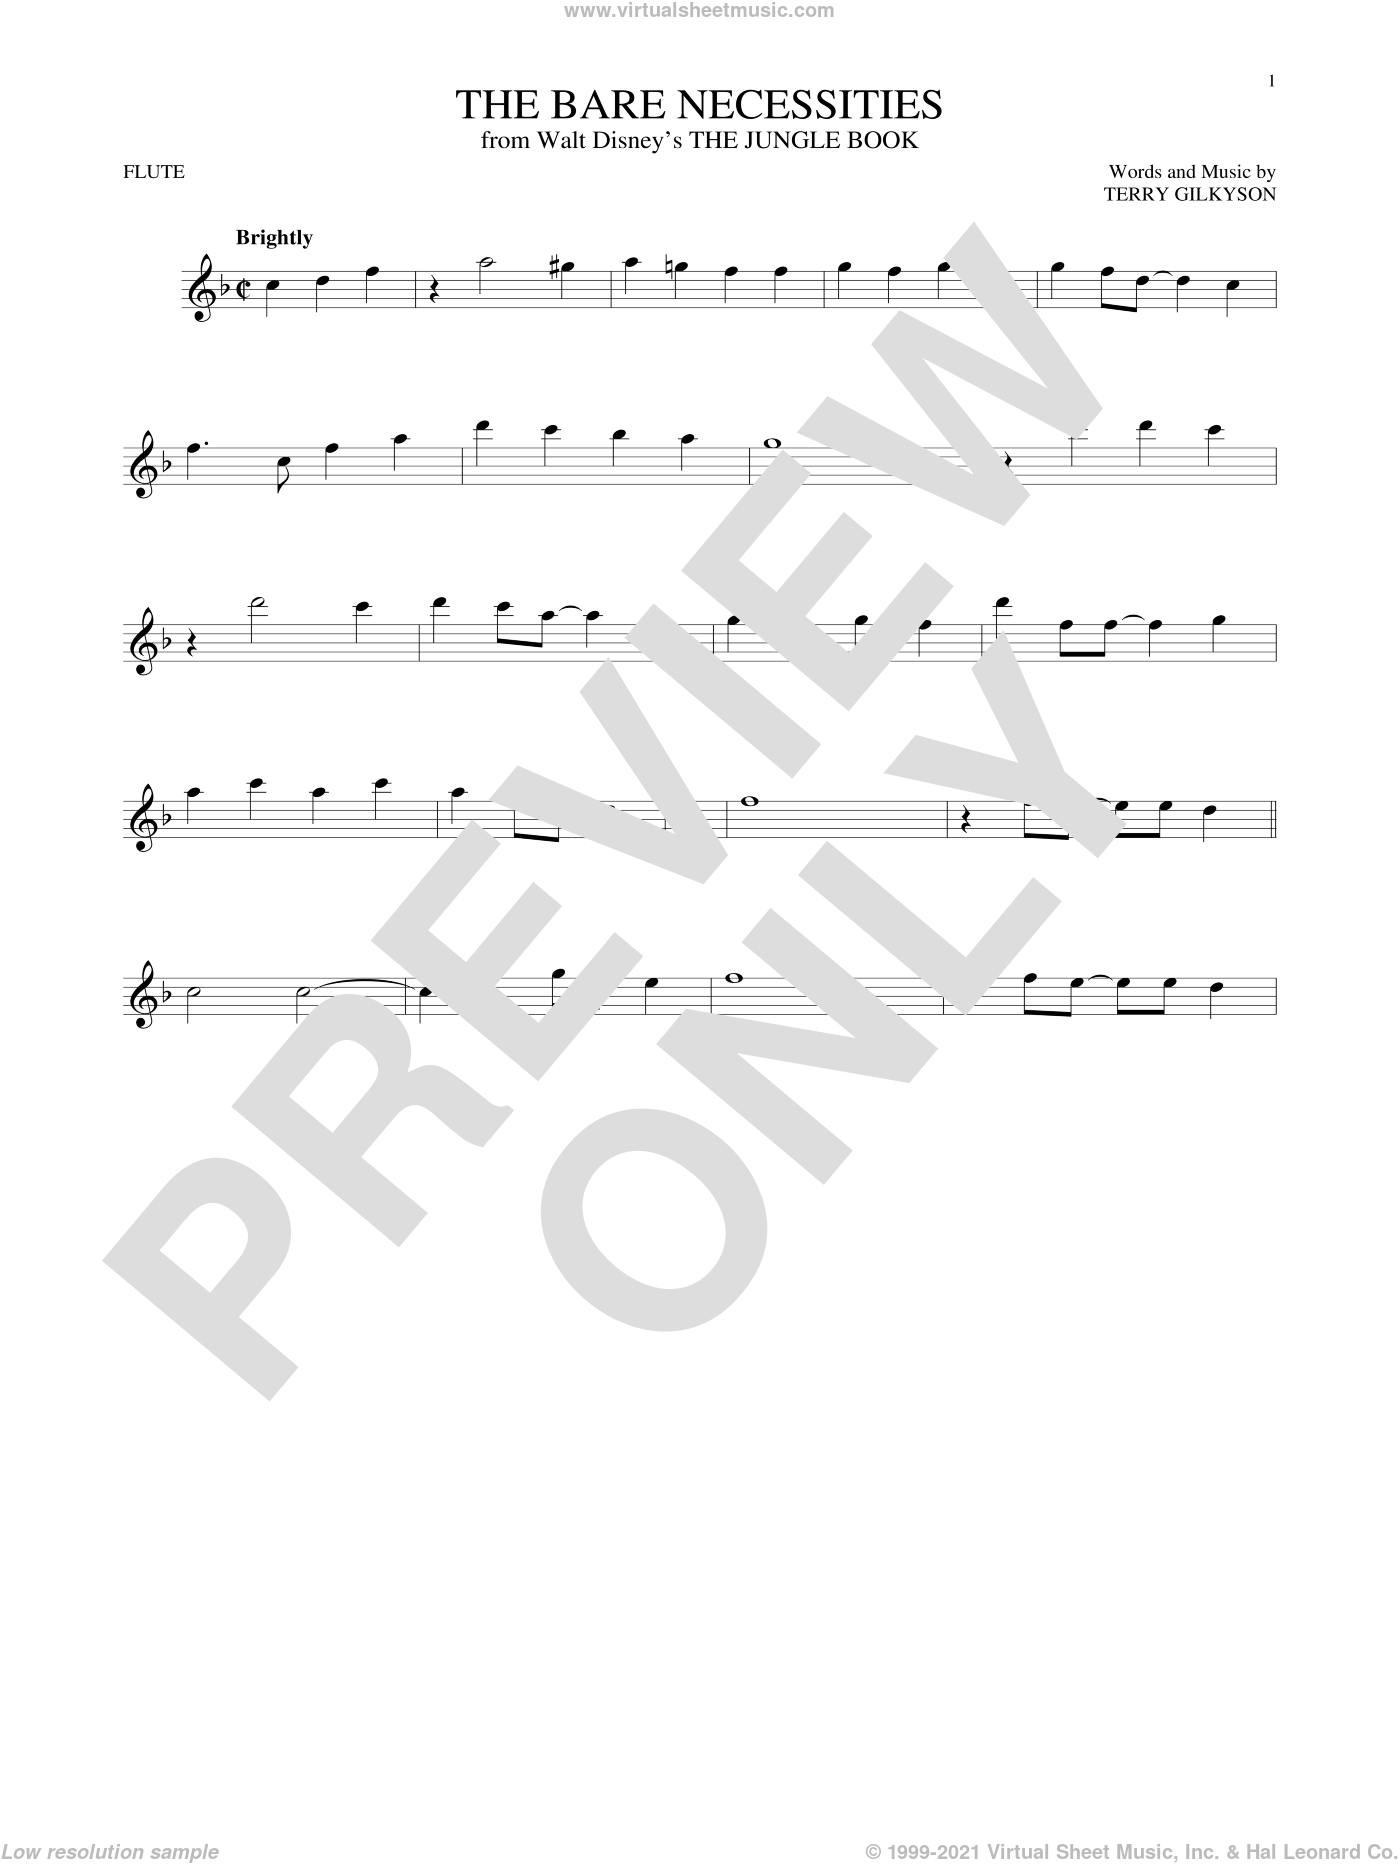 The Bare Necessities sheet music for flute solo by Terry Gilkyson, intermediate skill level